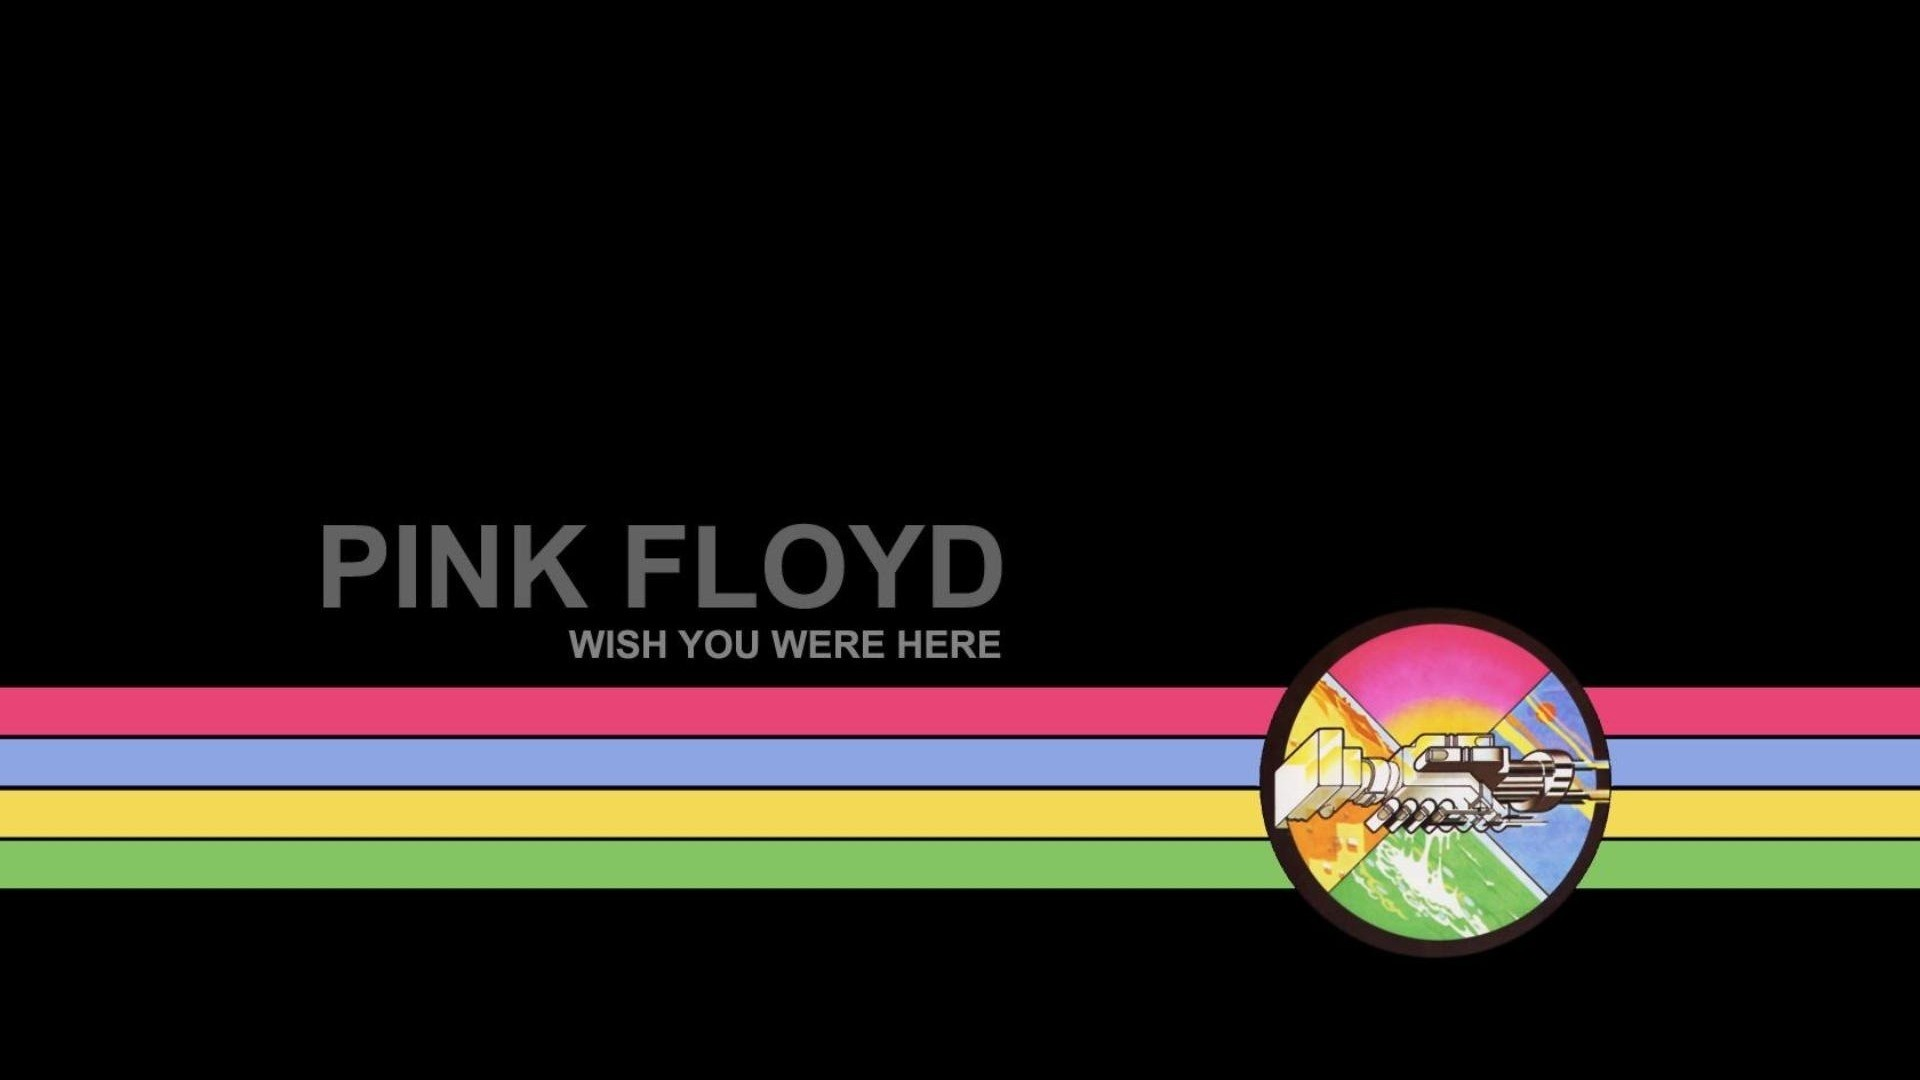 1920x1080 Pink Floyd Wish You Were Here Desktop Full HD Wallpaper ...